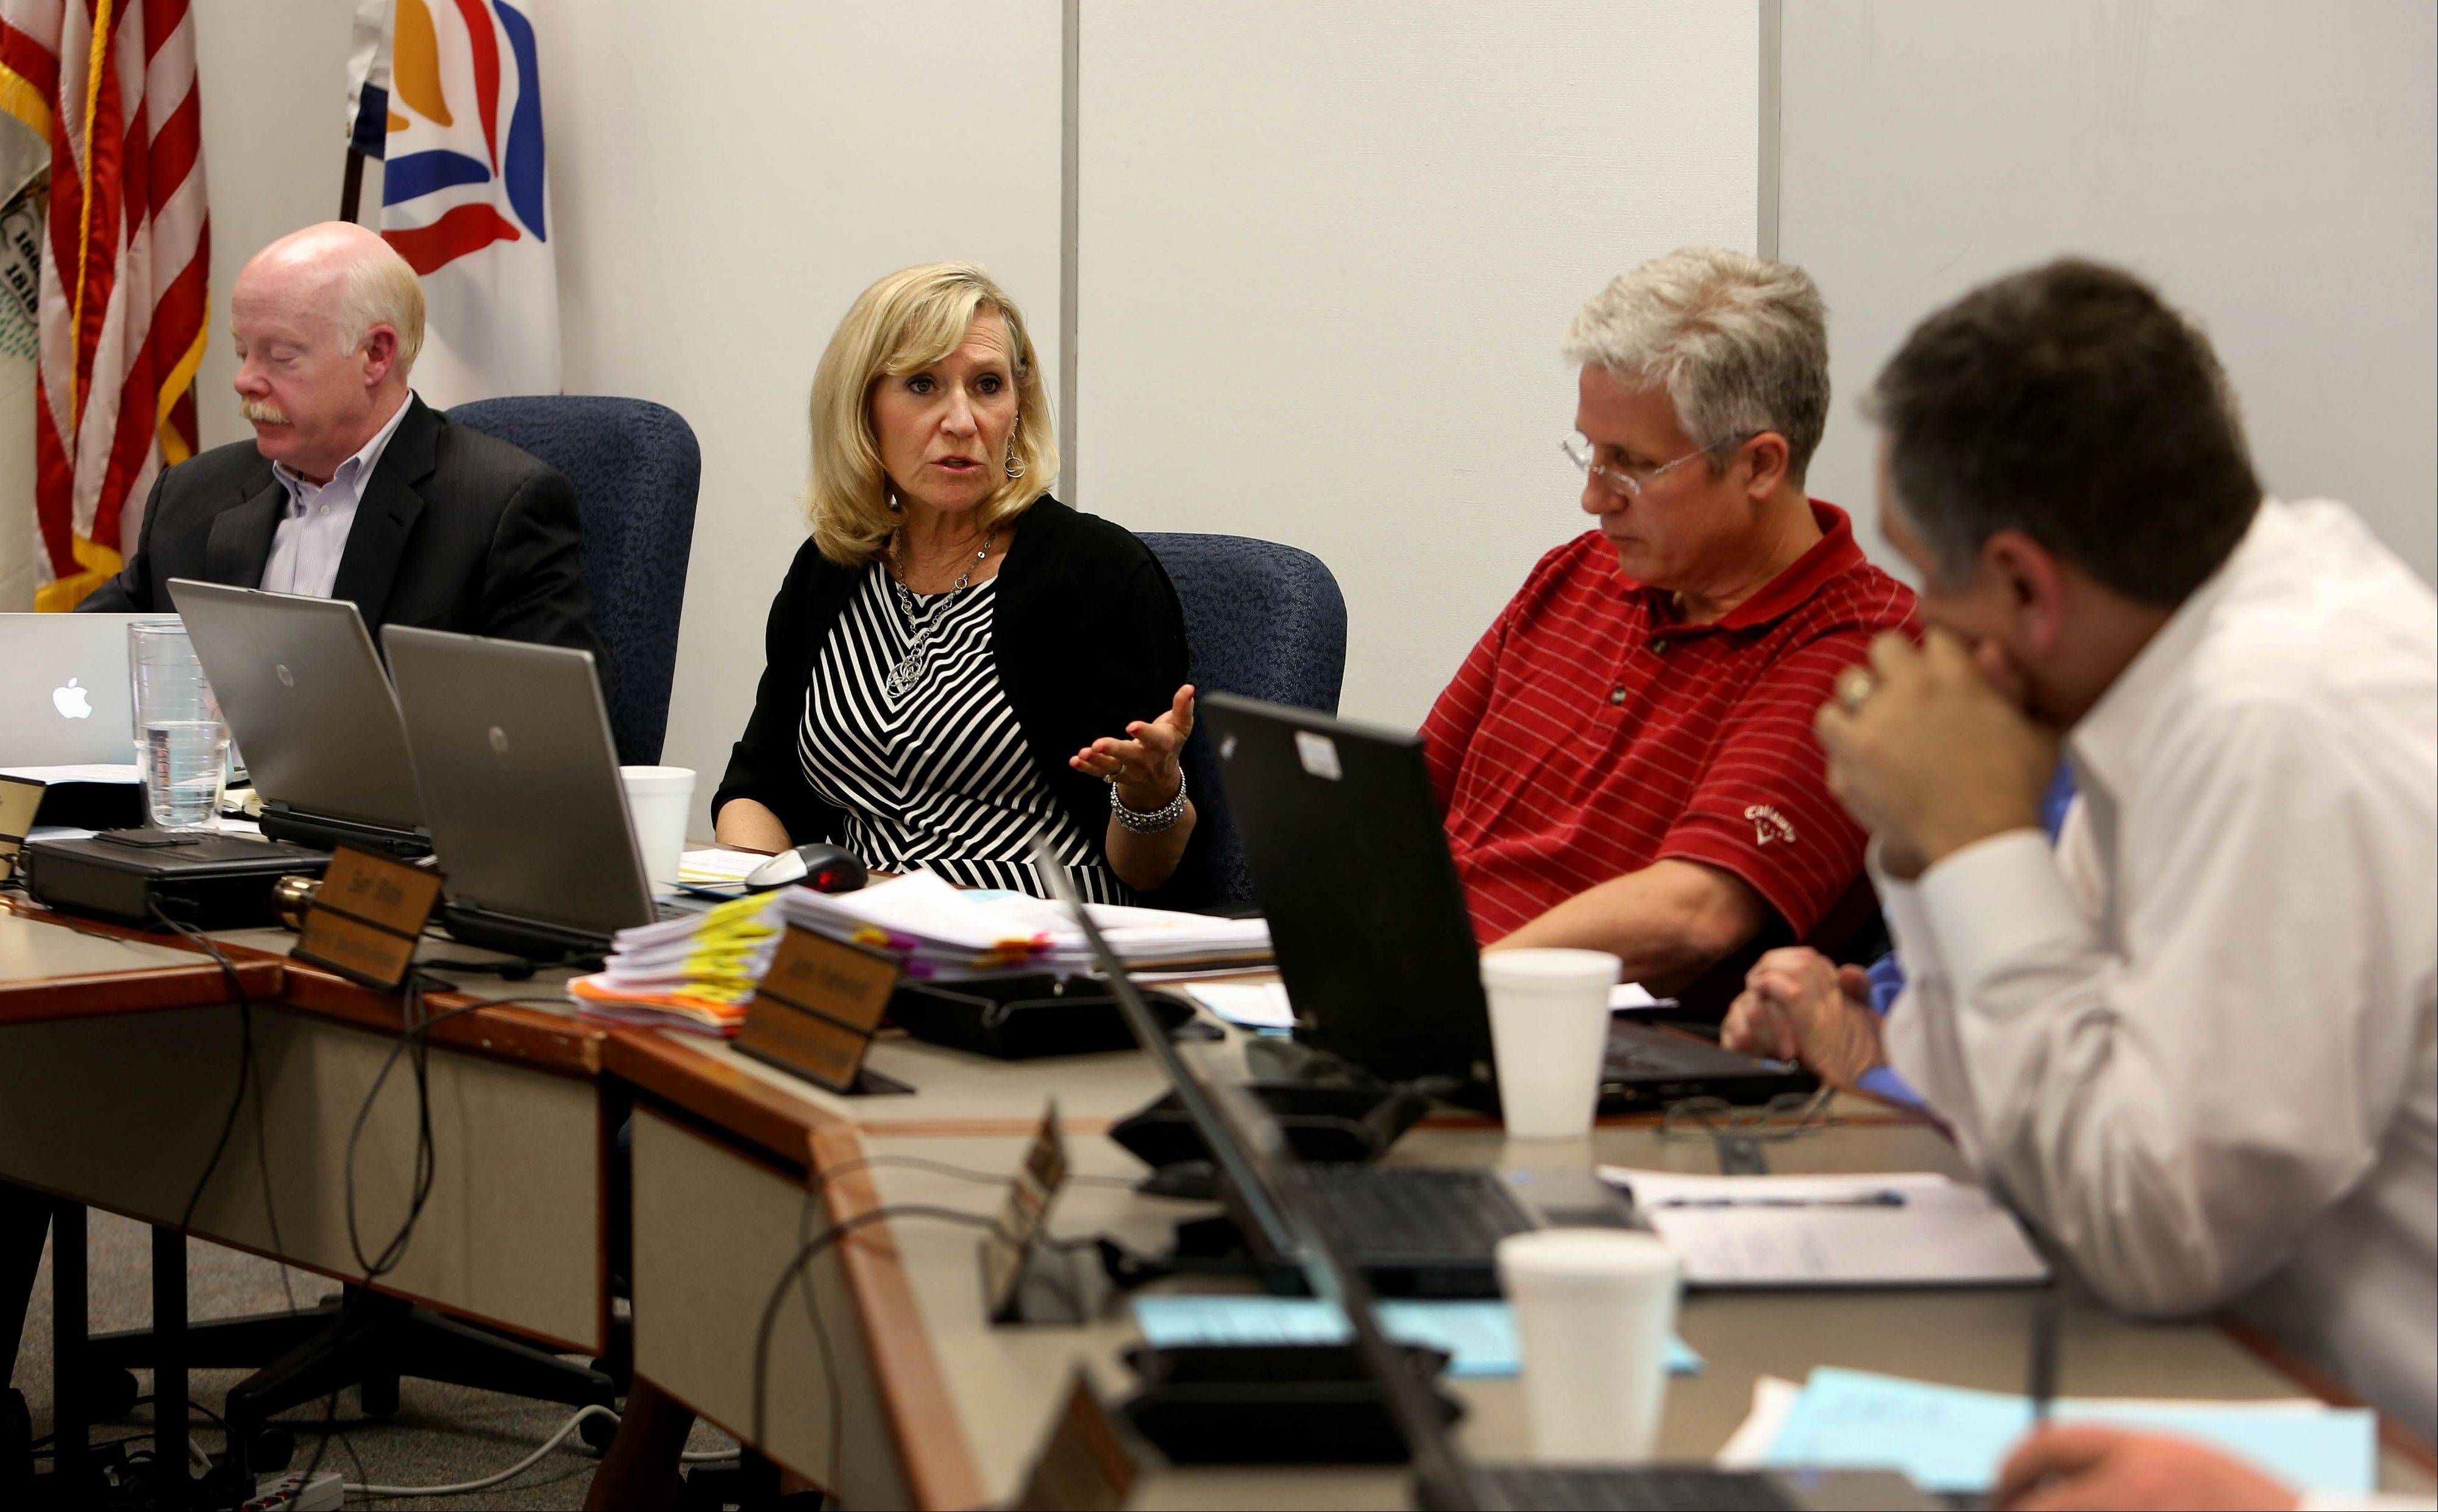 Glen Ellyn District 41 school board members listen to Superintendent Ann Riebock Tuesday during discussion of whether to reinstate a controversial book in eighth grade classrooms.